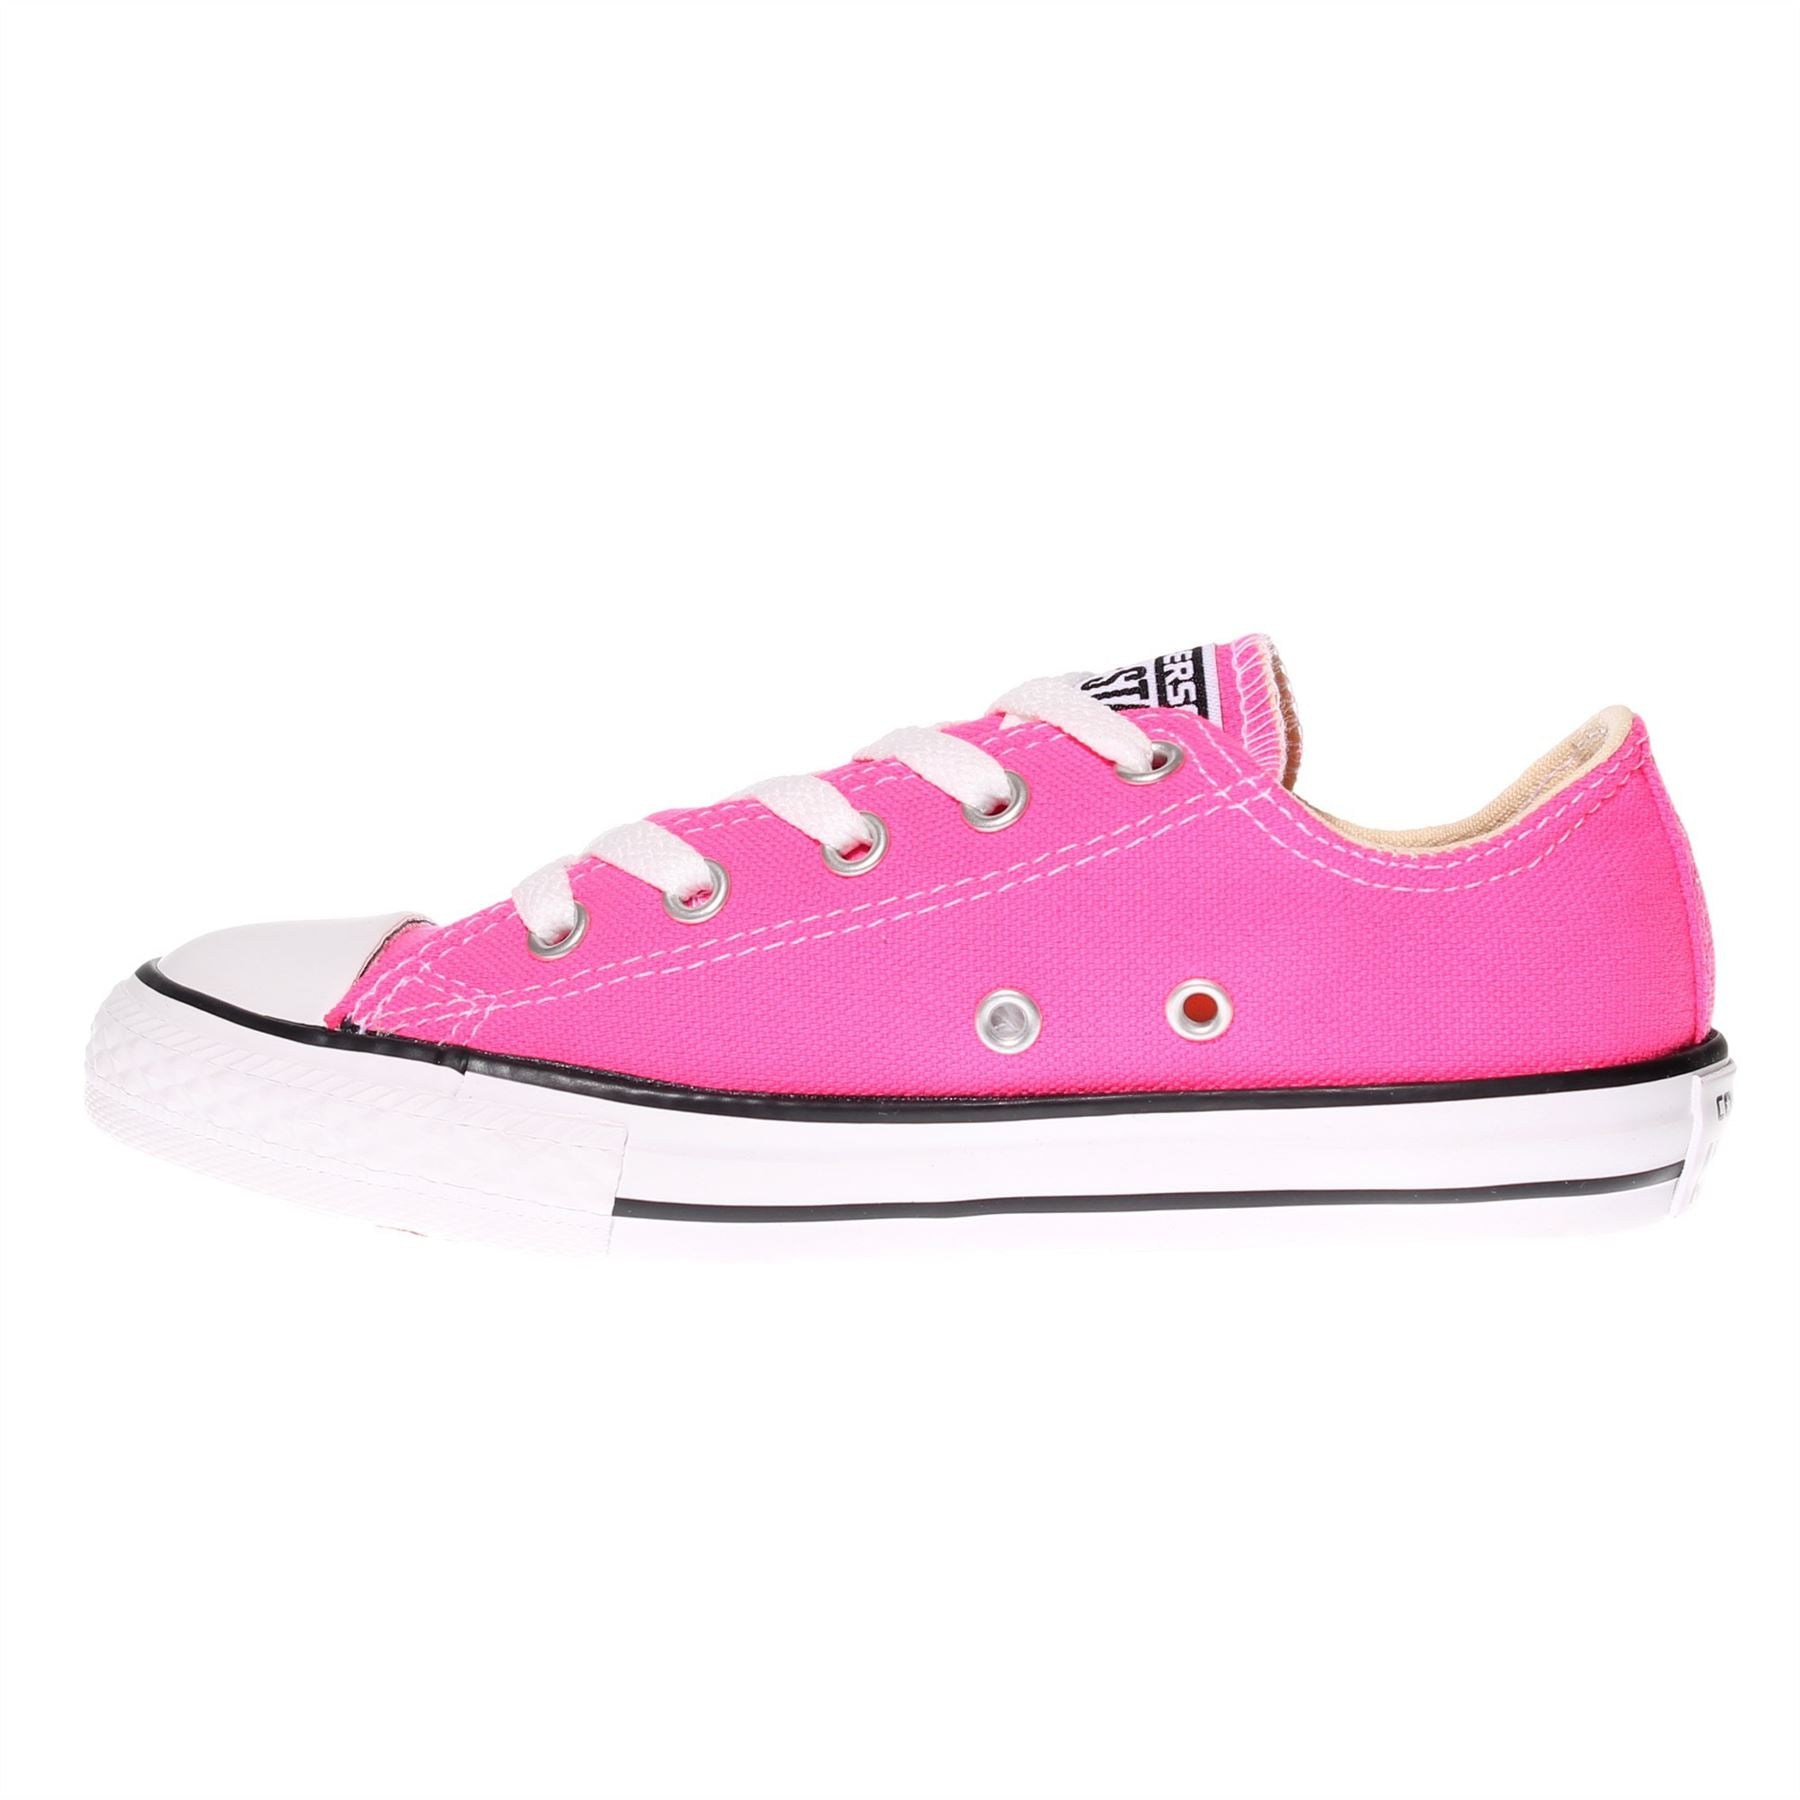 Converse CT OX Knockout Pink 339790F Kids UK 11